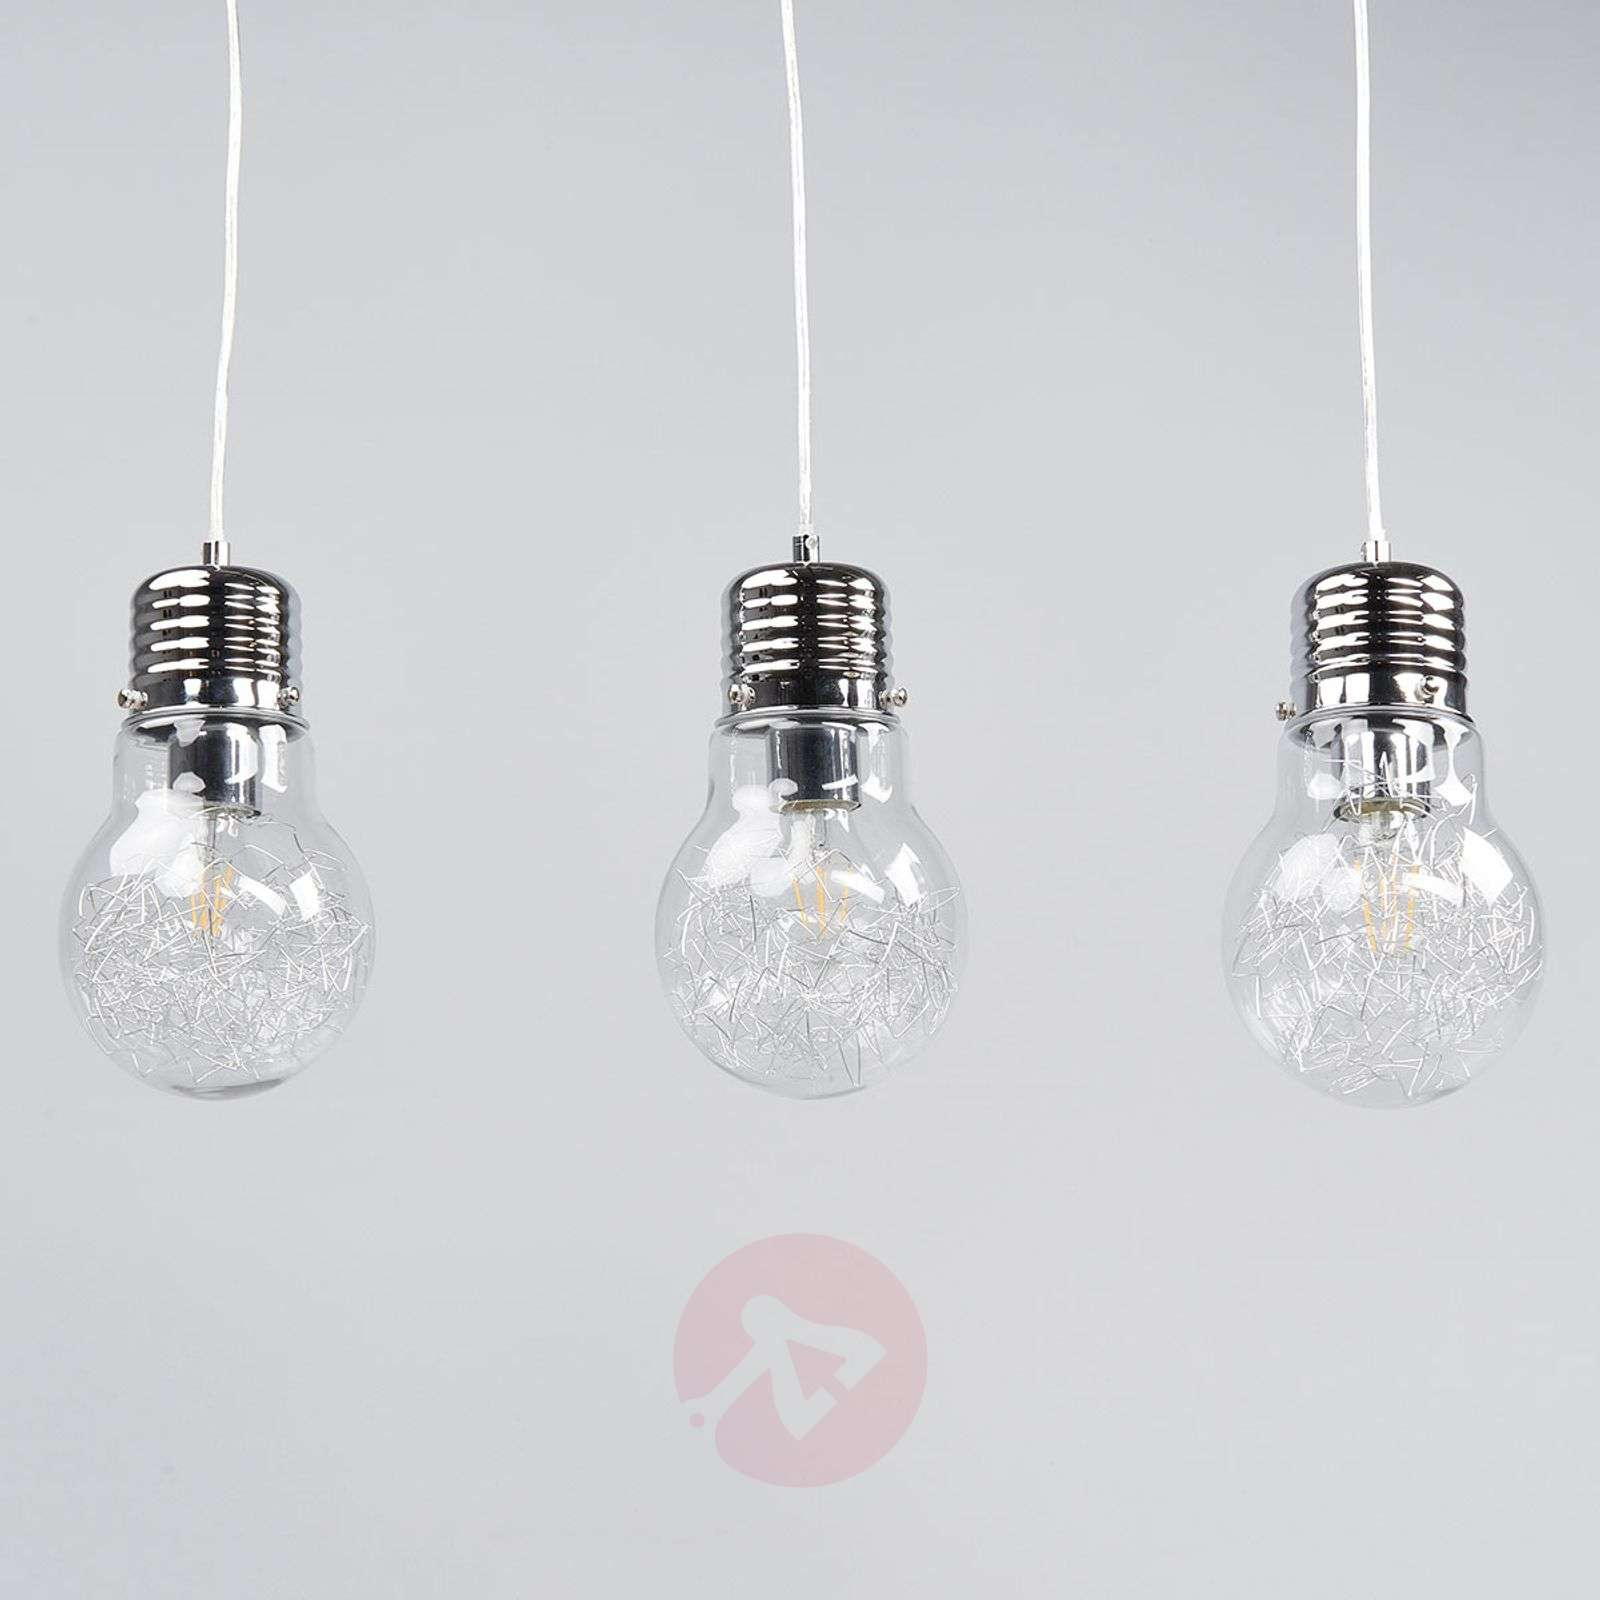 classic filament light led bulb lighting pendant pear products trainspotters